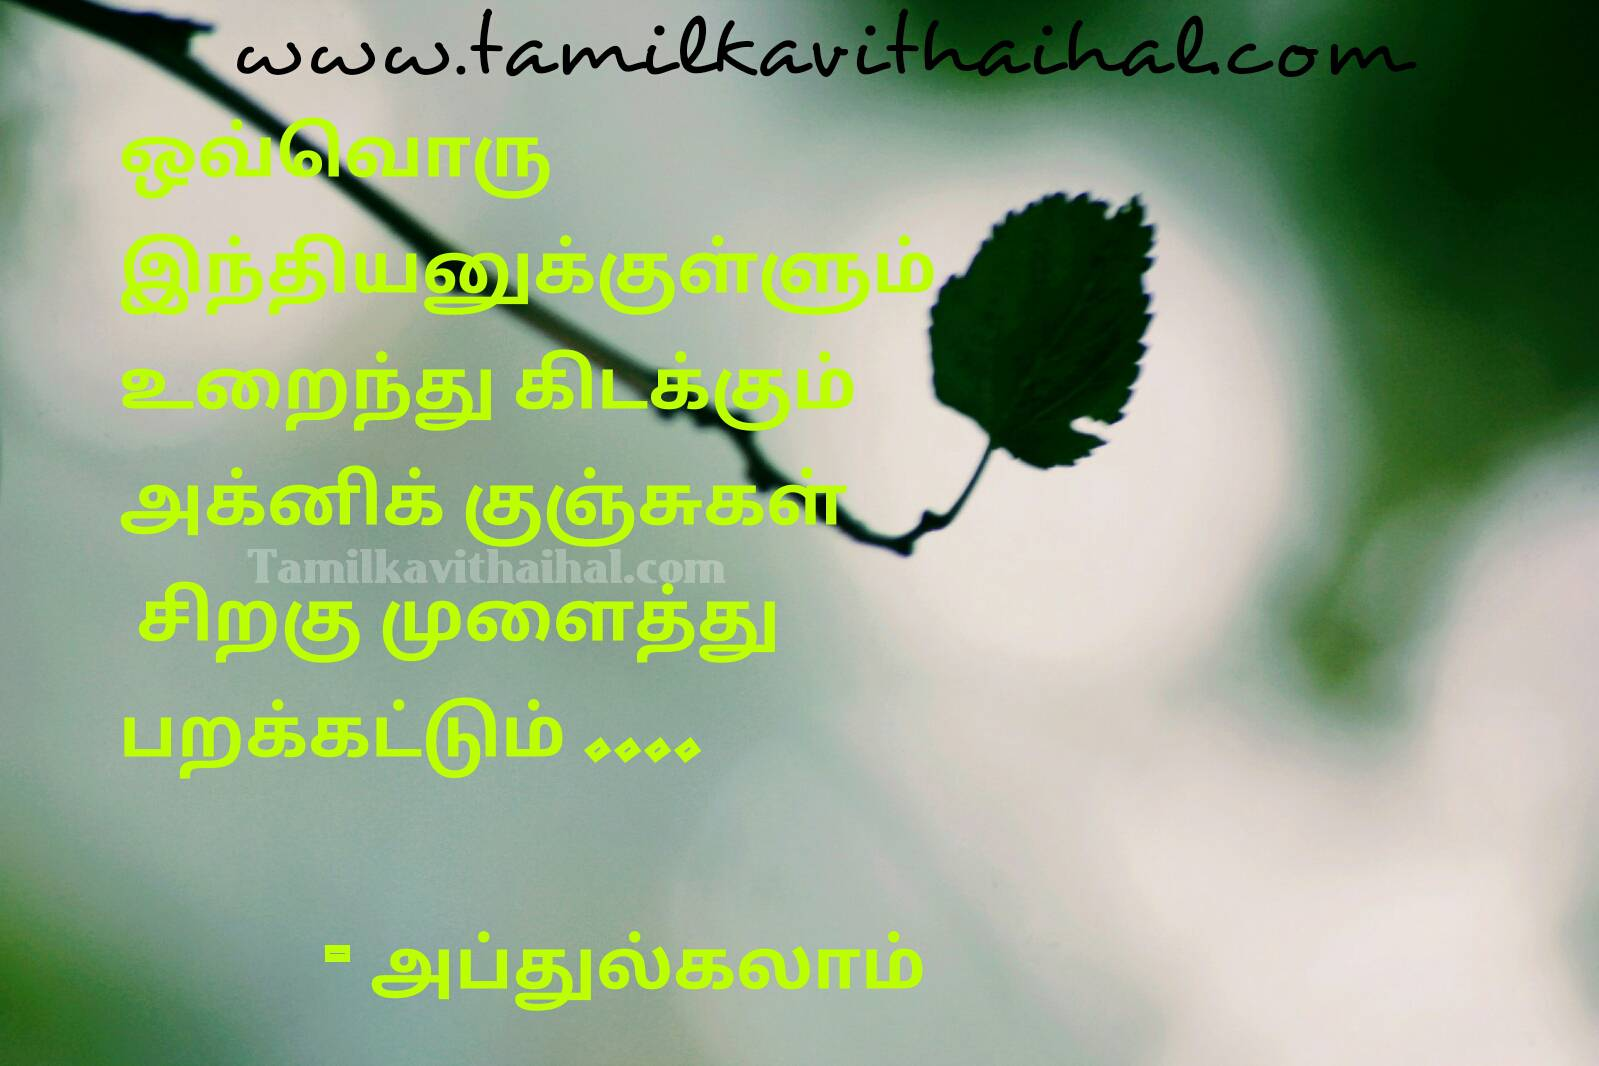 Dr abj abdhul kalam saying about indian akini sirakukal quotes for success thathuvam image download